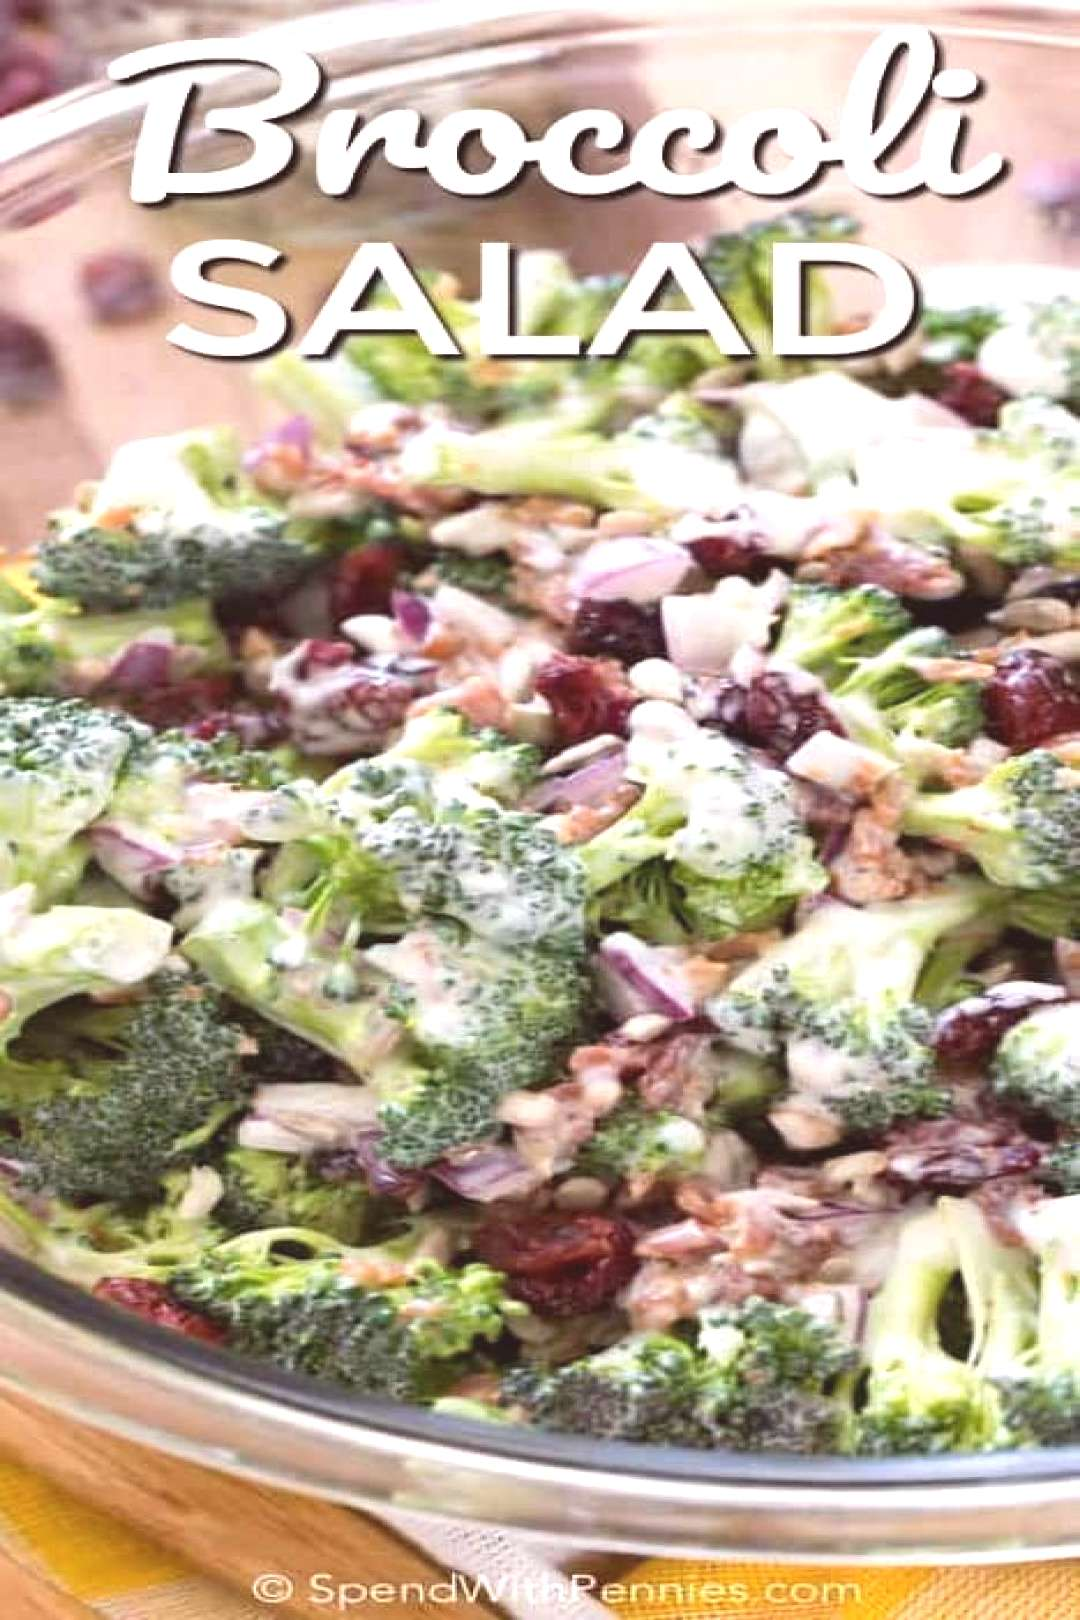 Broccoli Salad - Spend With Pennies - -